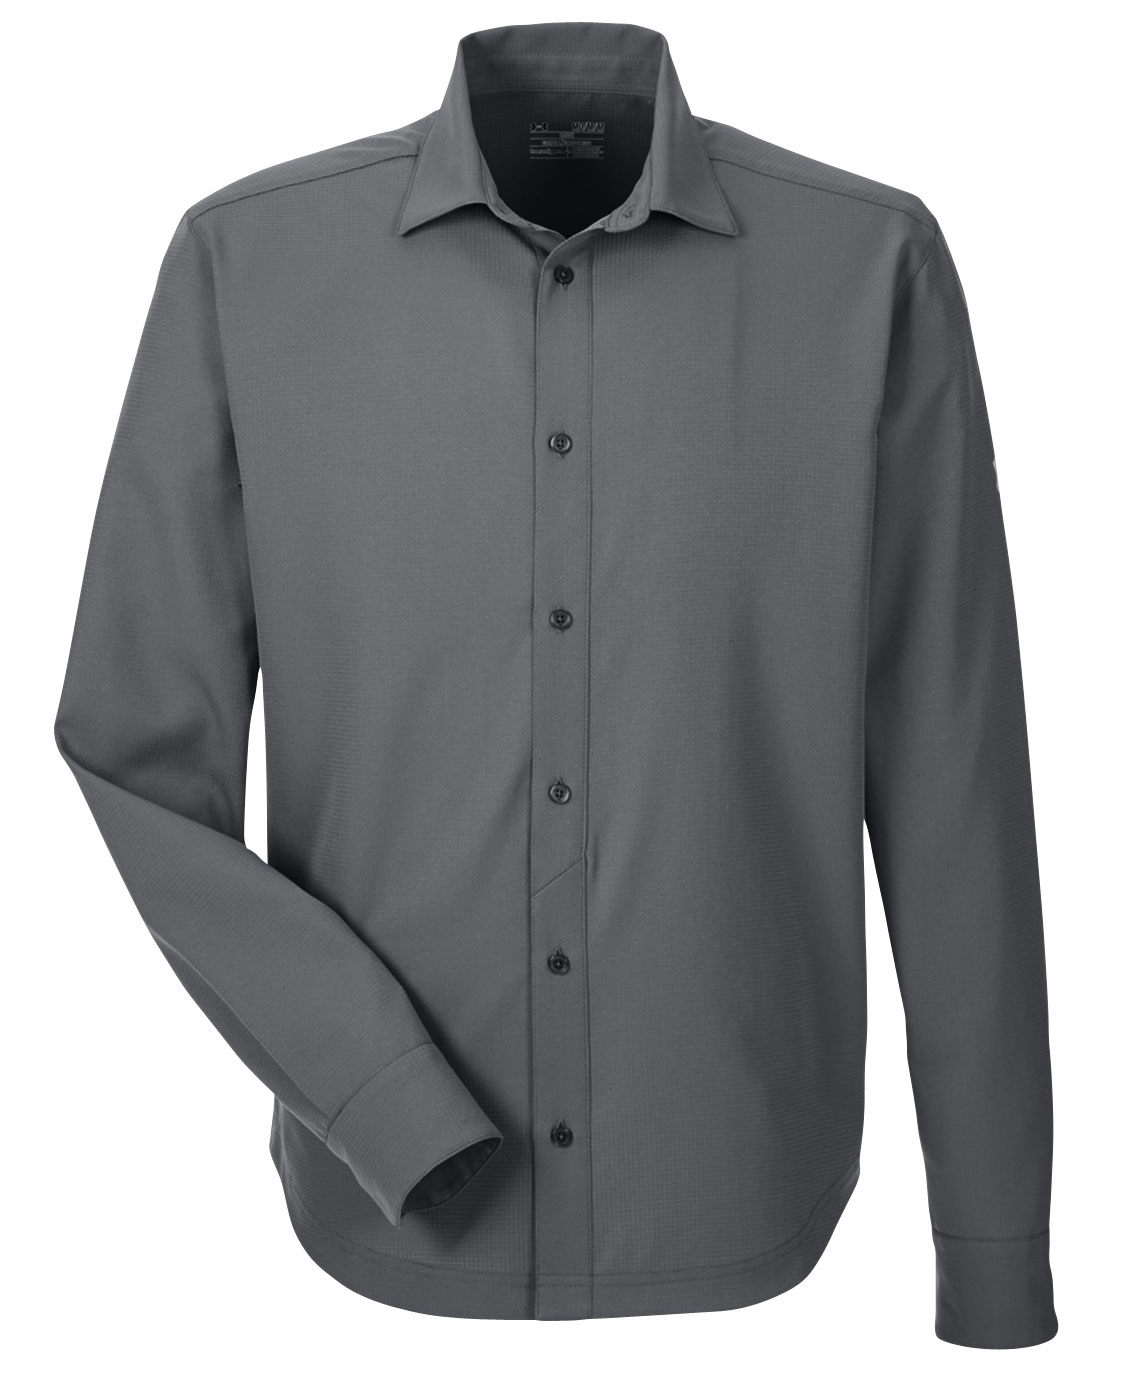 Custom mens under armour ultimate long sleeve button down for Under armor business shirts